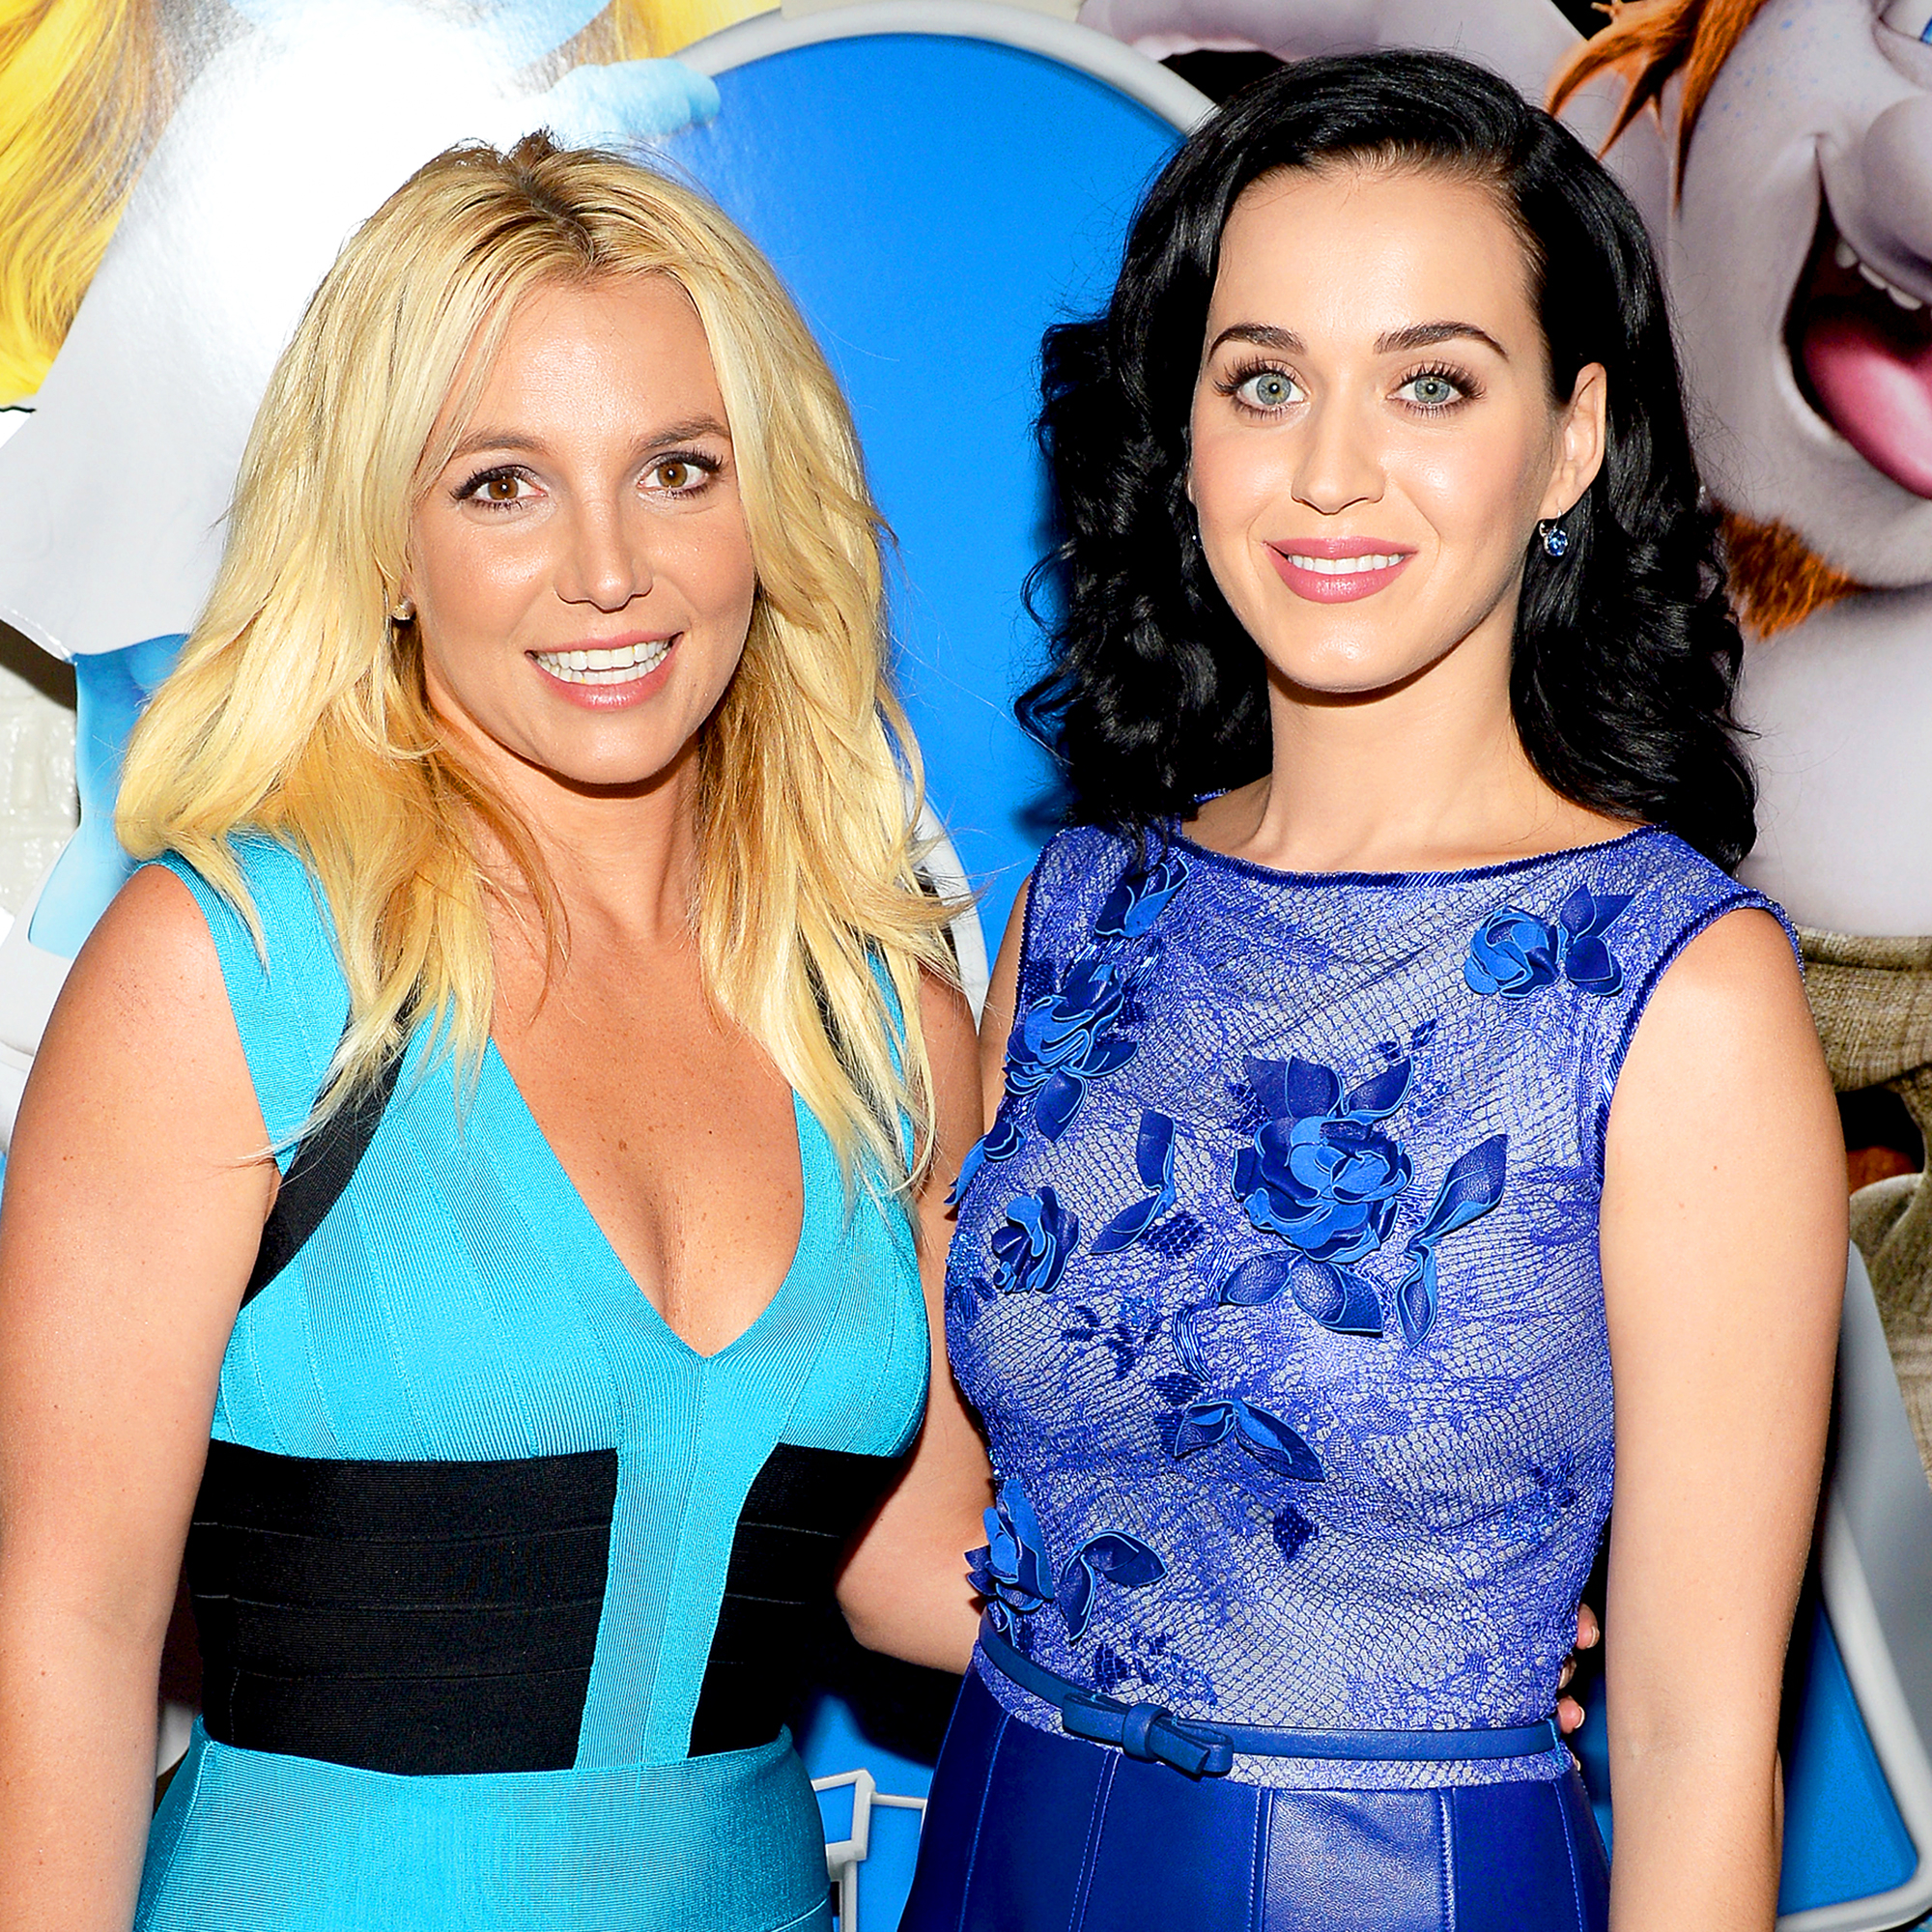 Britney Spears and Katy Perry